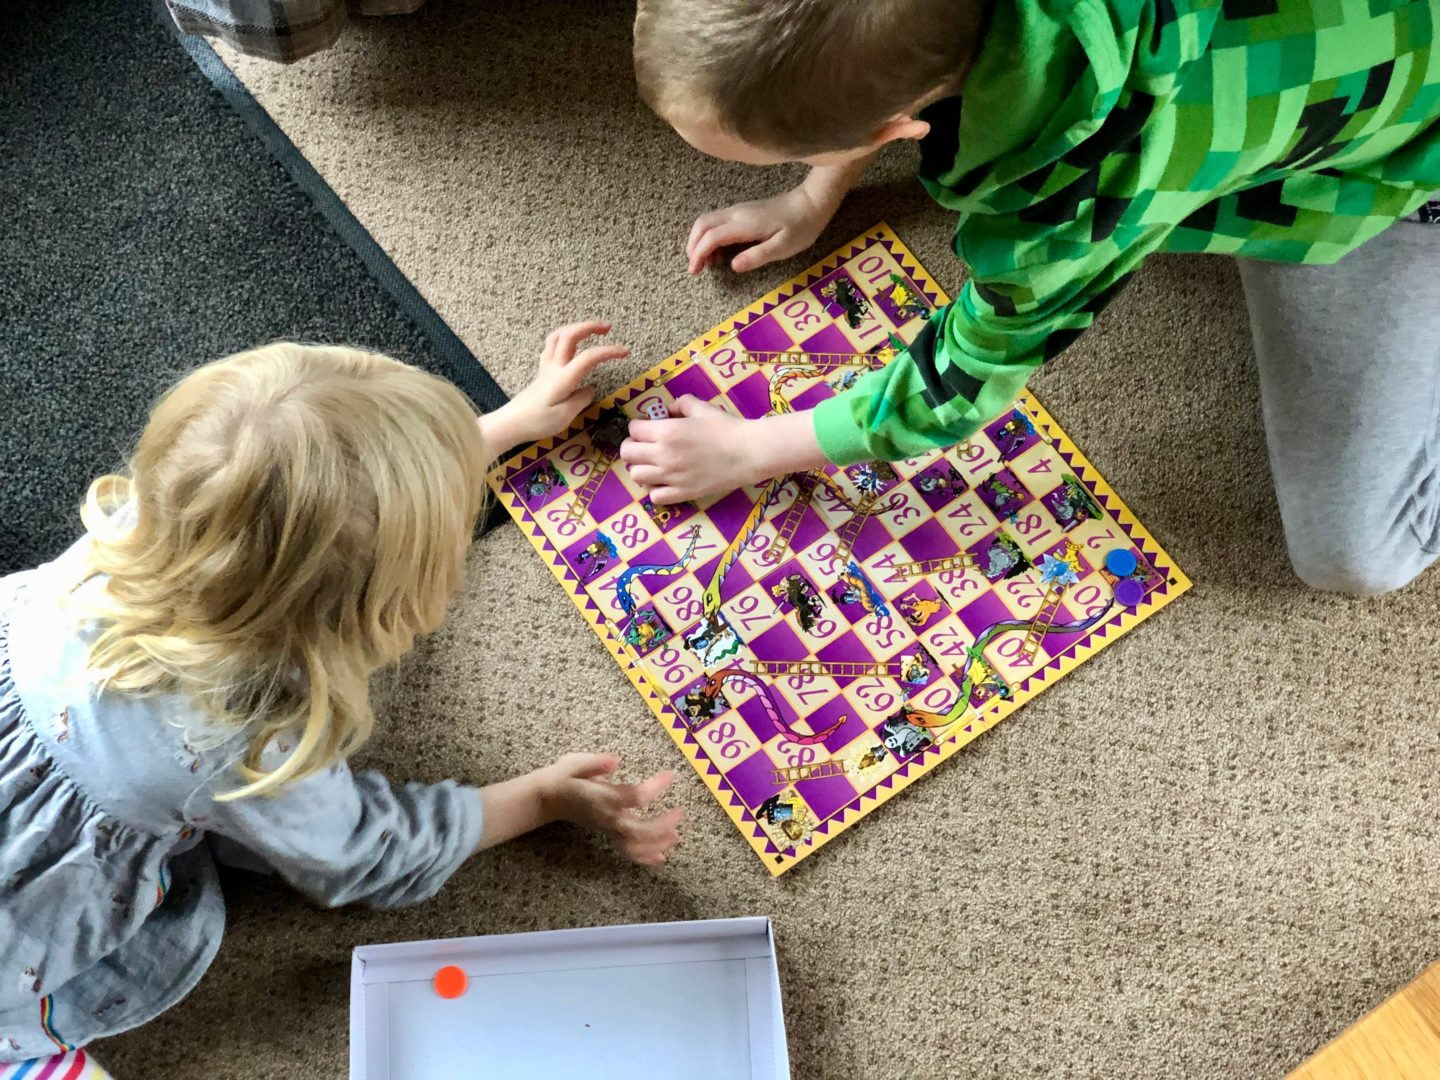 AD: Landal Sandybrook Peak District family review - a relaxing autumnal long weekend break. Kids playing snakes and ladders.